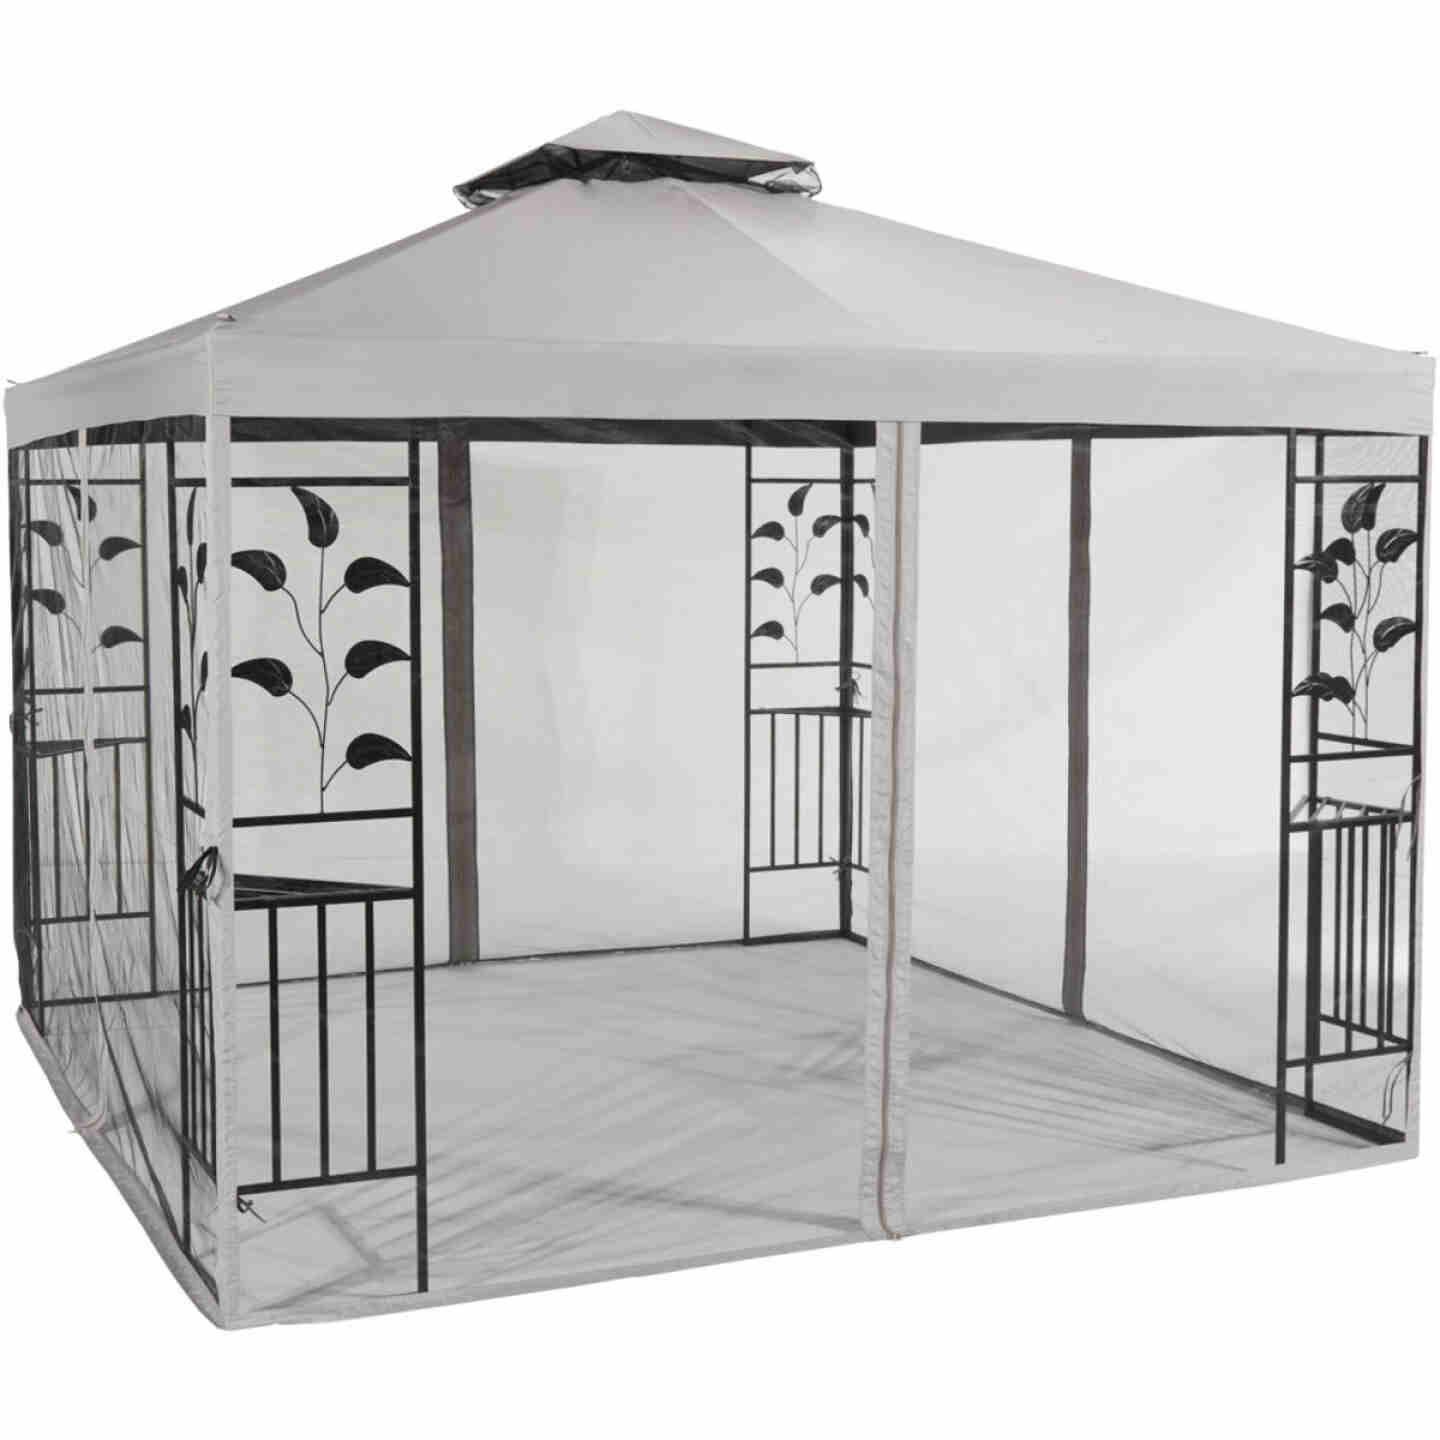 Outdoor Expressions 12 Ft. x 12 Ft. Gray & Black Steel Gazebo with Sides Image 1